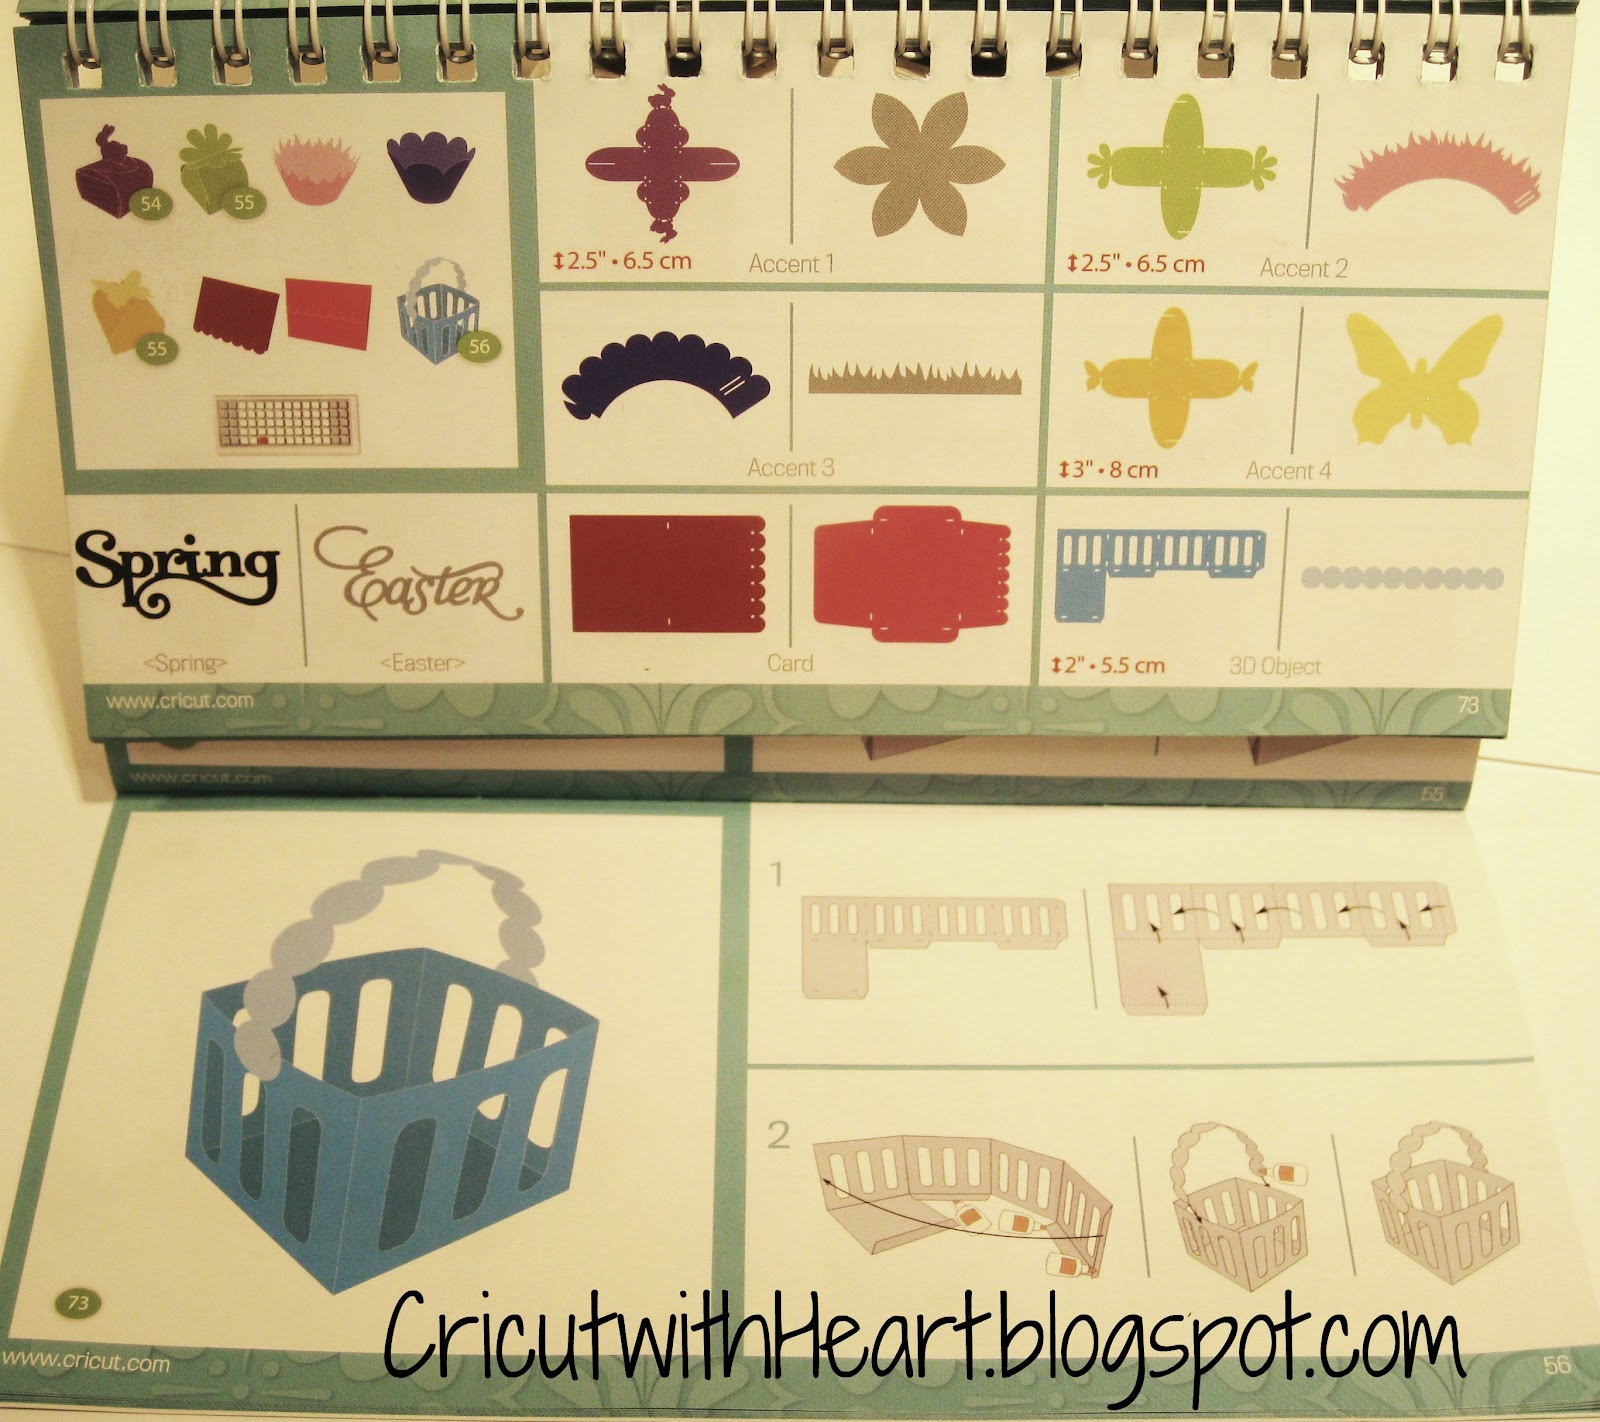 cricut art philosophy handbook